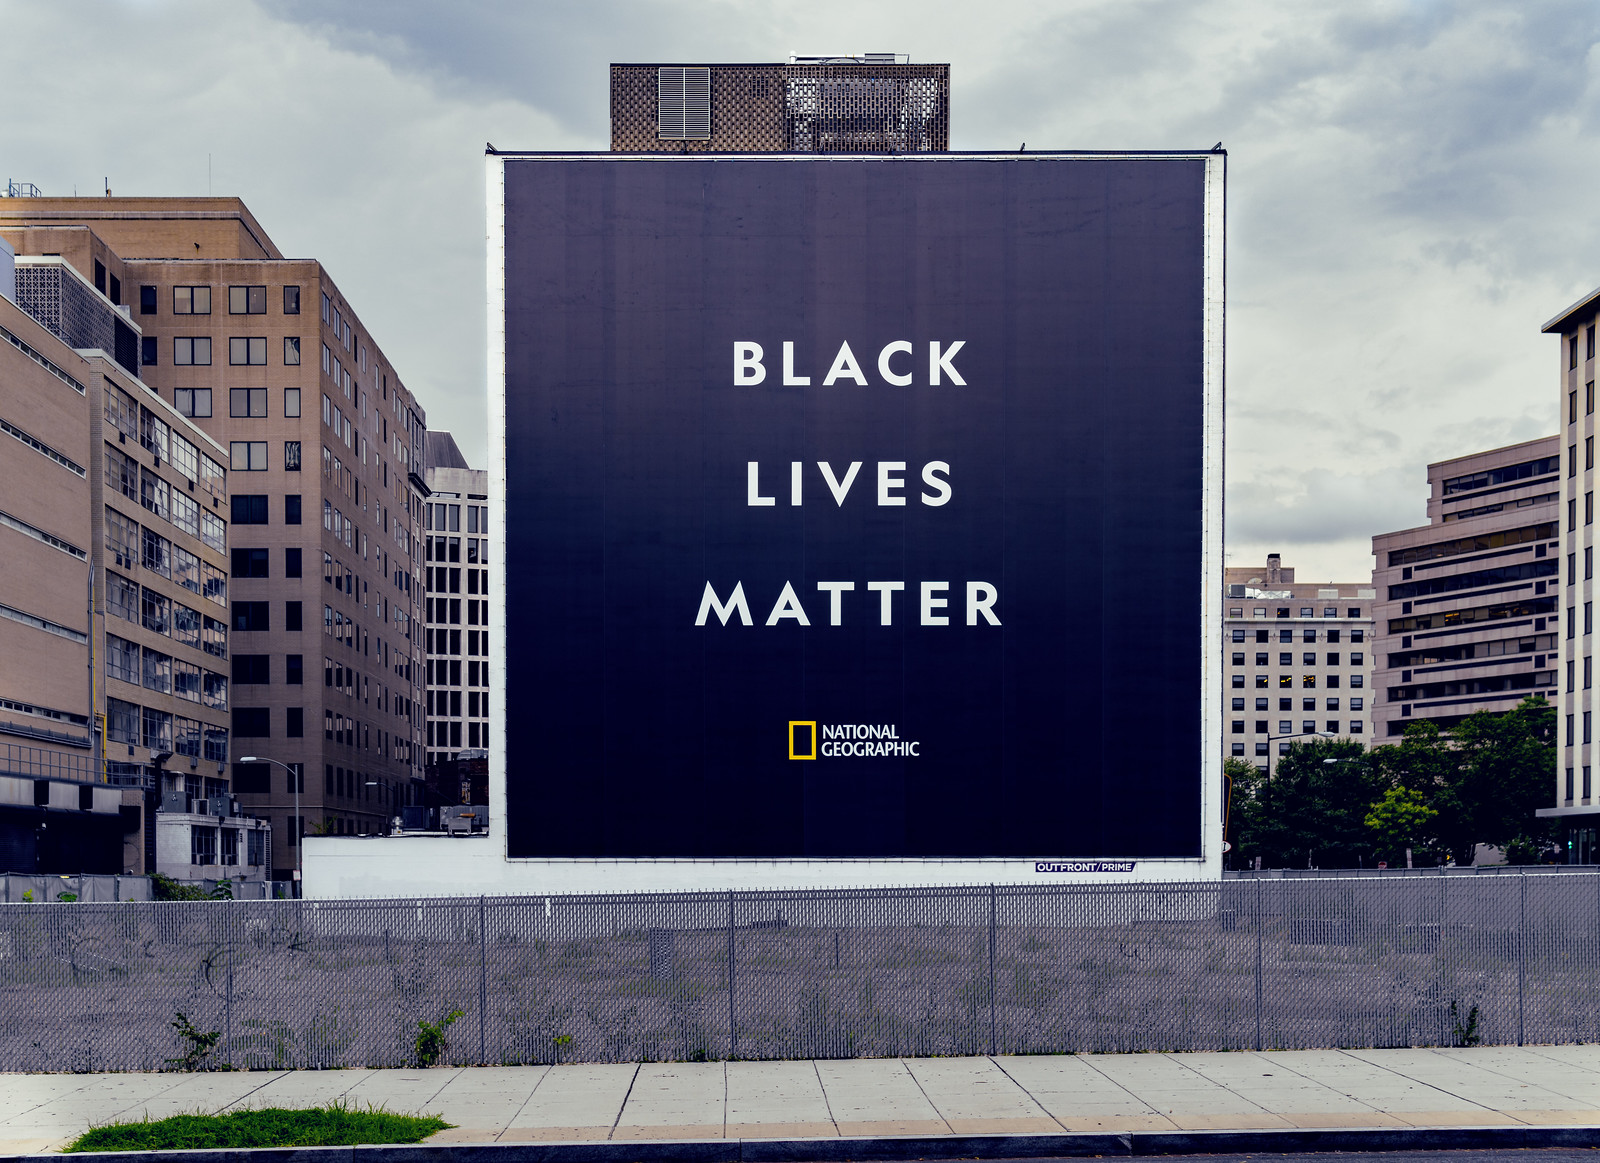 Photo Friday: Black Lives Matter, Washington, DC USA